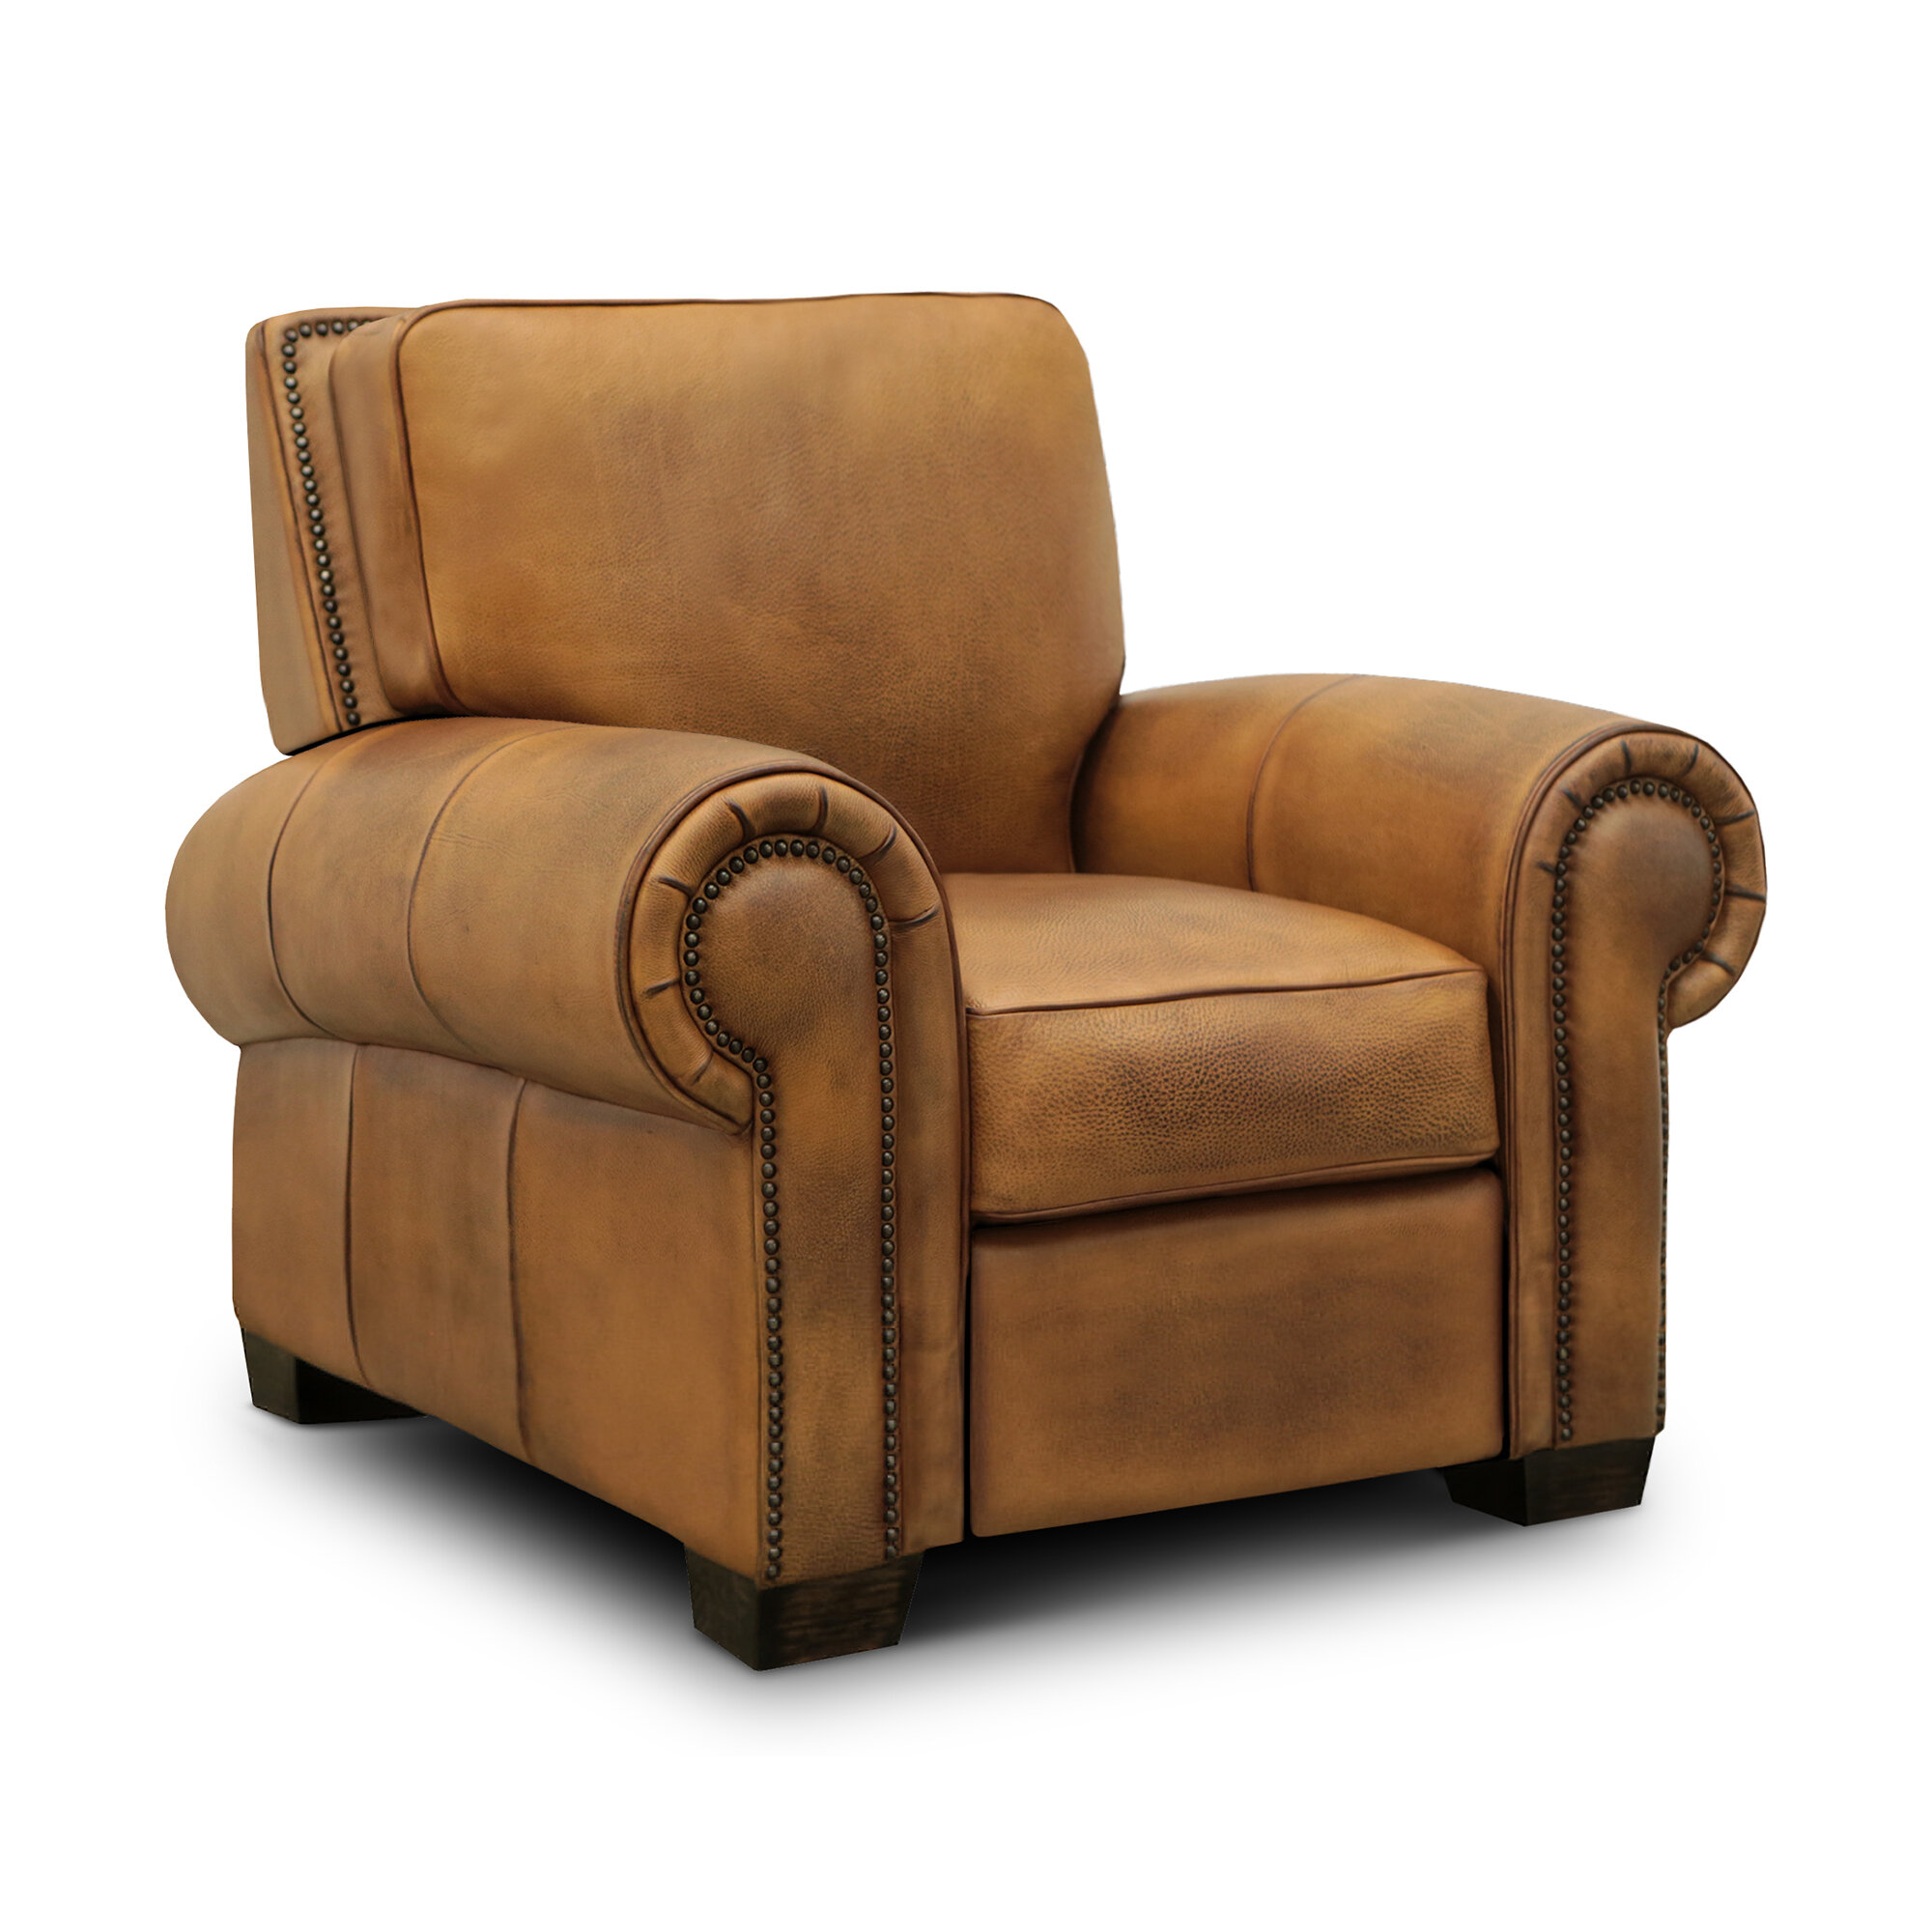 Charlton Home Ozzy Genuine Leather Manual Recliner Wayfair